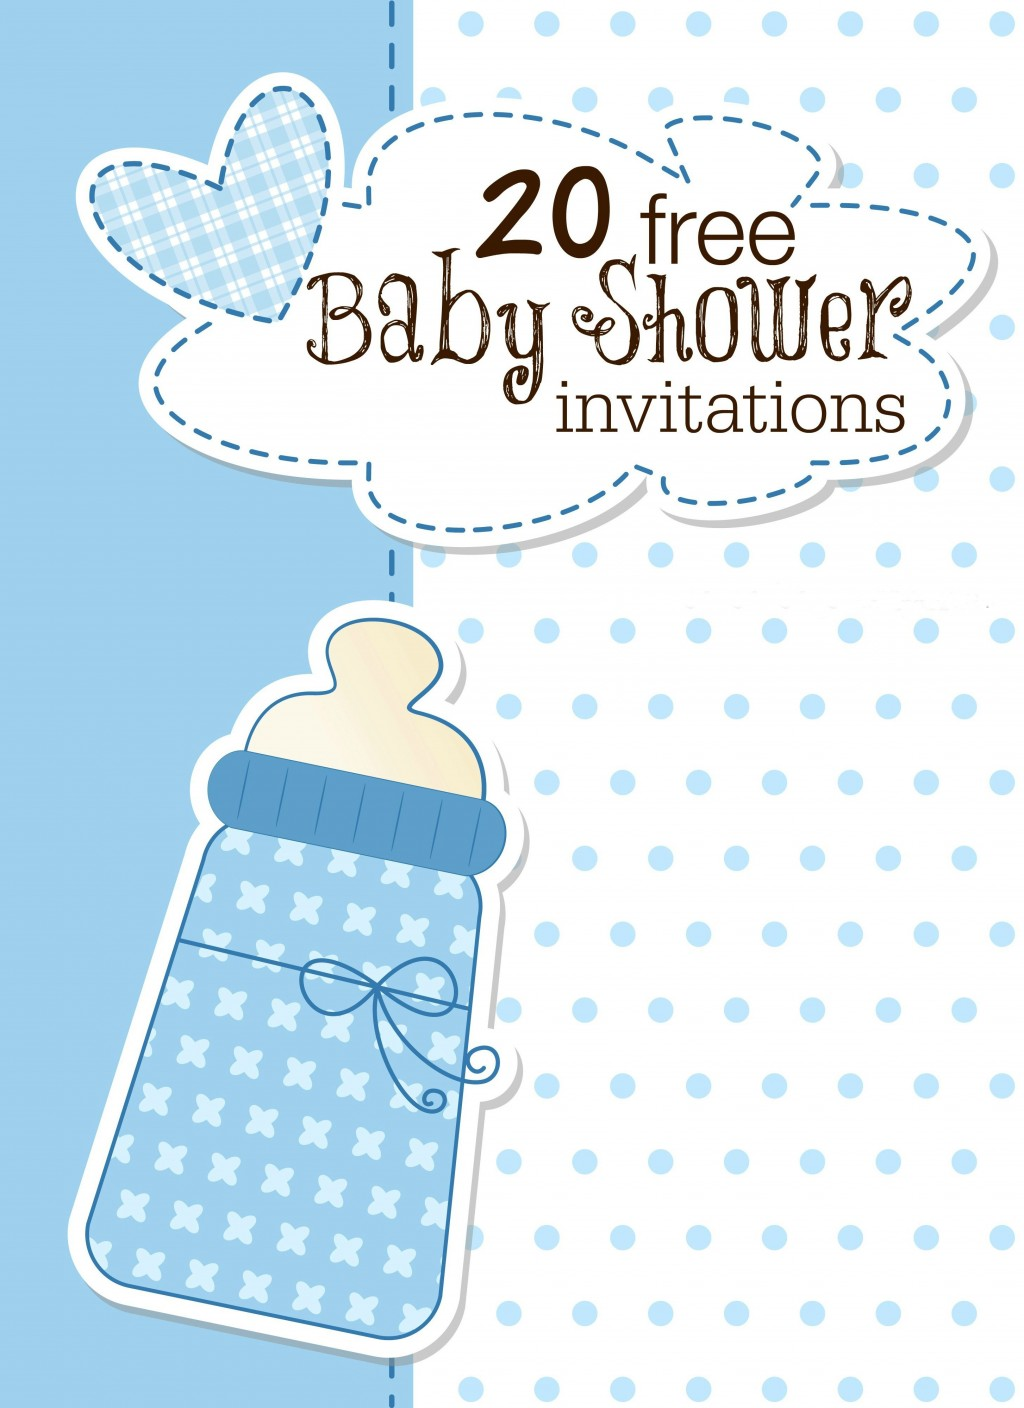 009 Awesome Baby Shower Card Design Free Photo  Template Microsoft Word Boy DownloadLarge